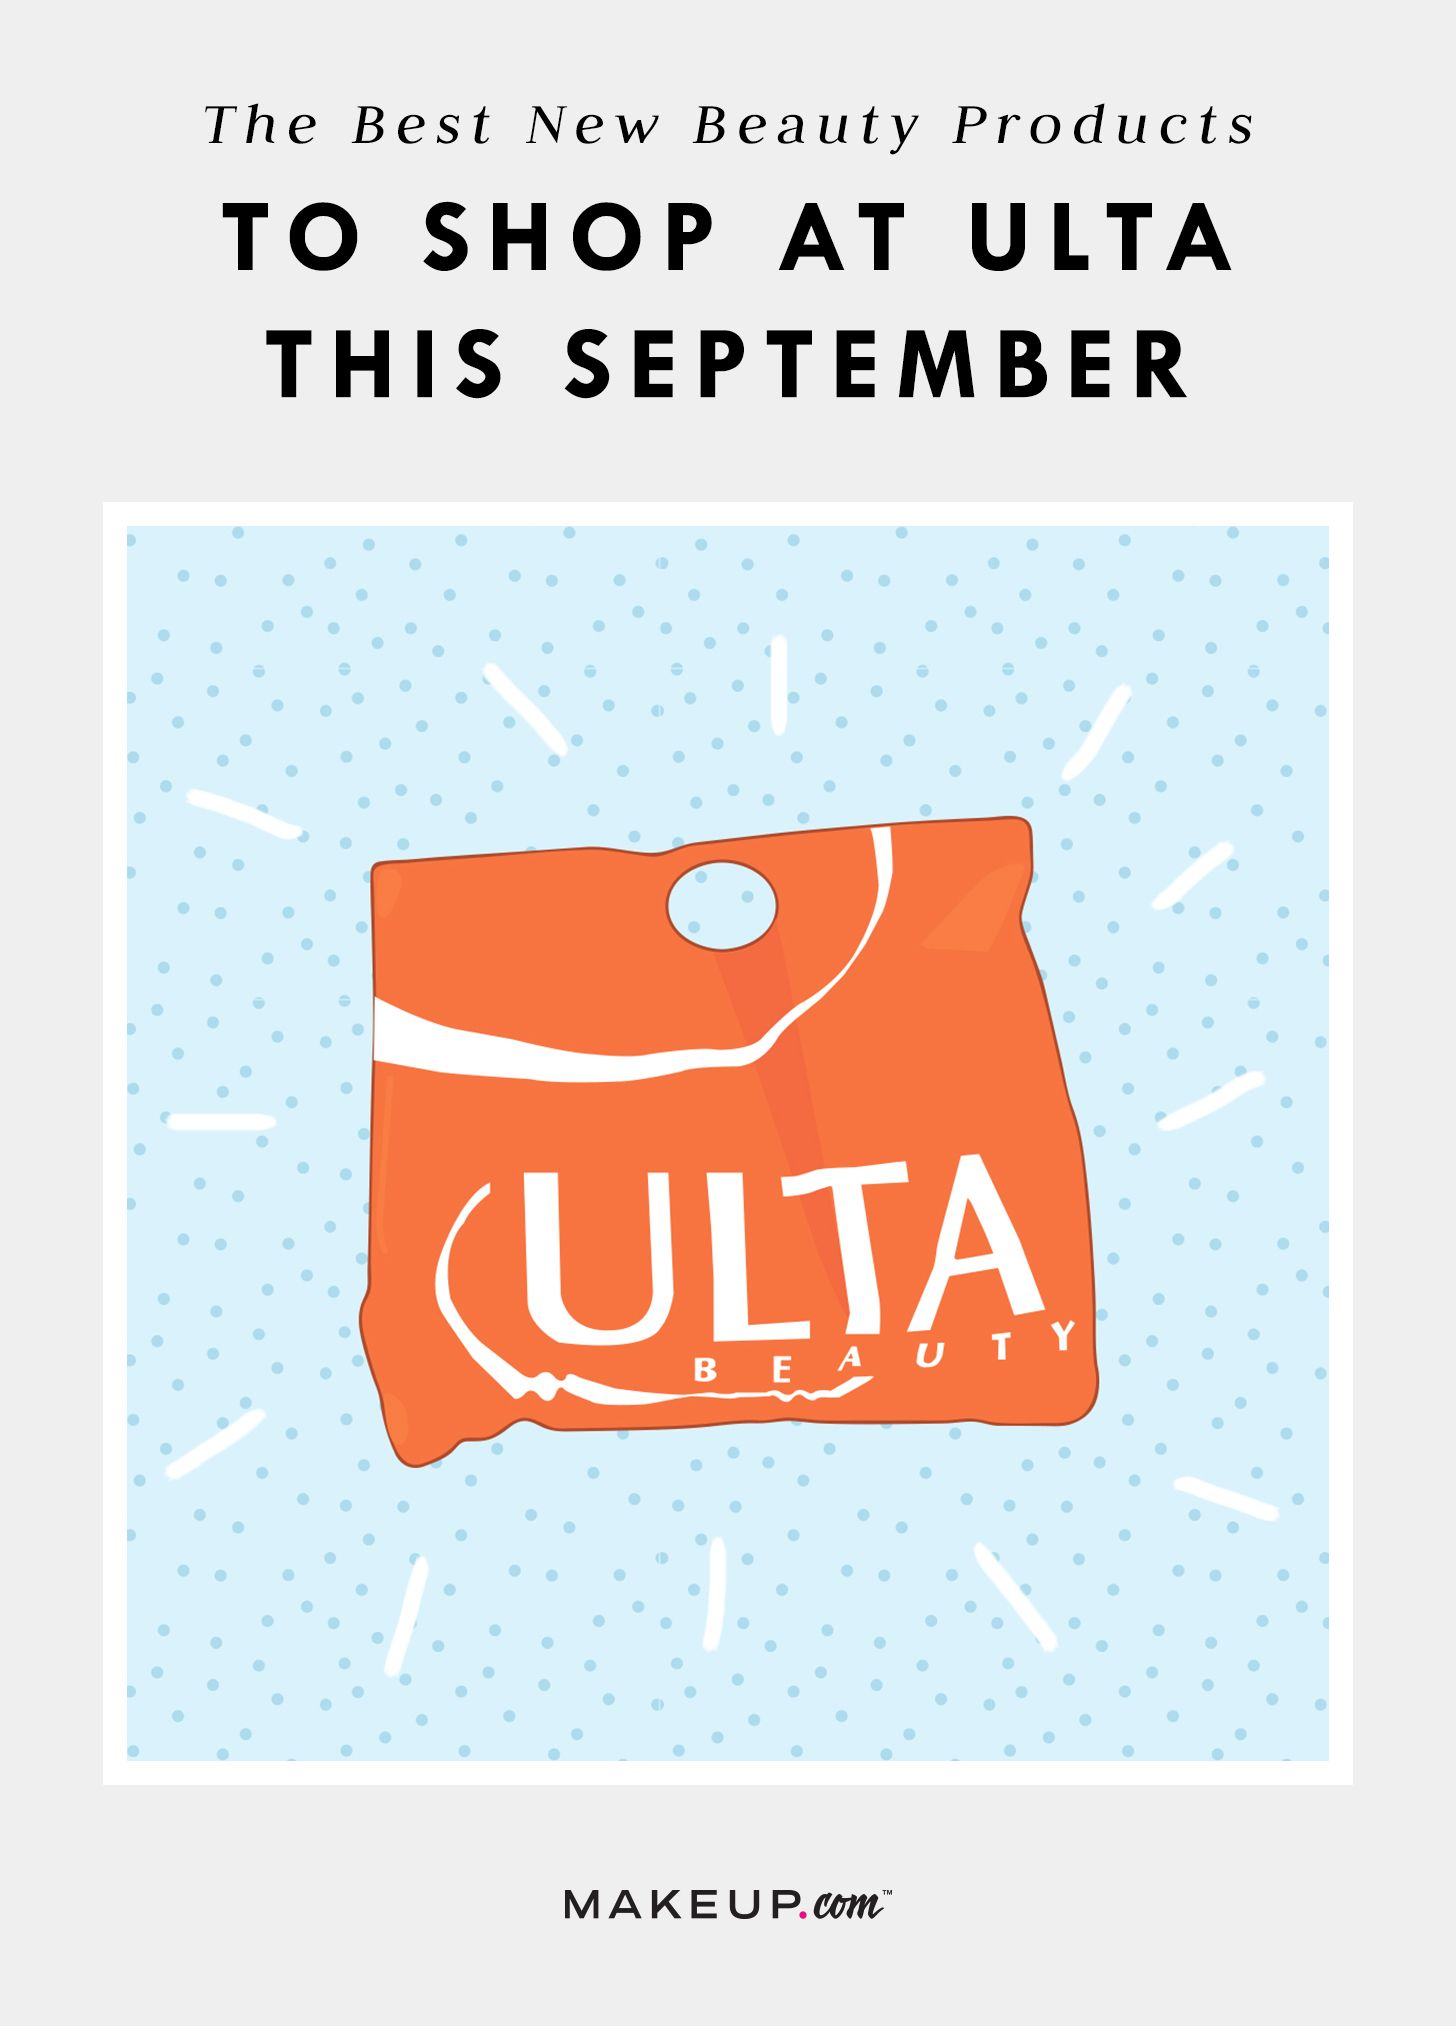 The Best Beauty Products To Buy At Ulta in September 2017